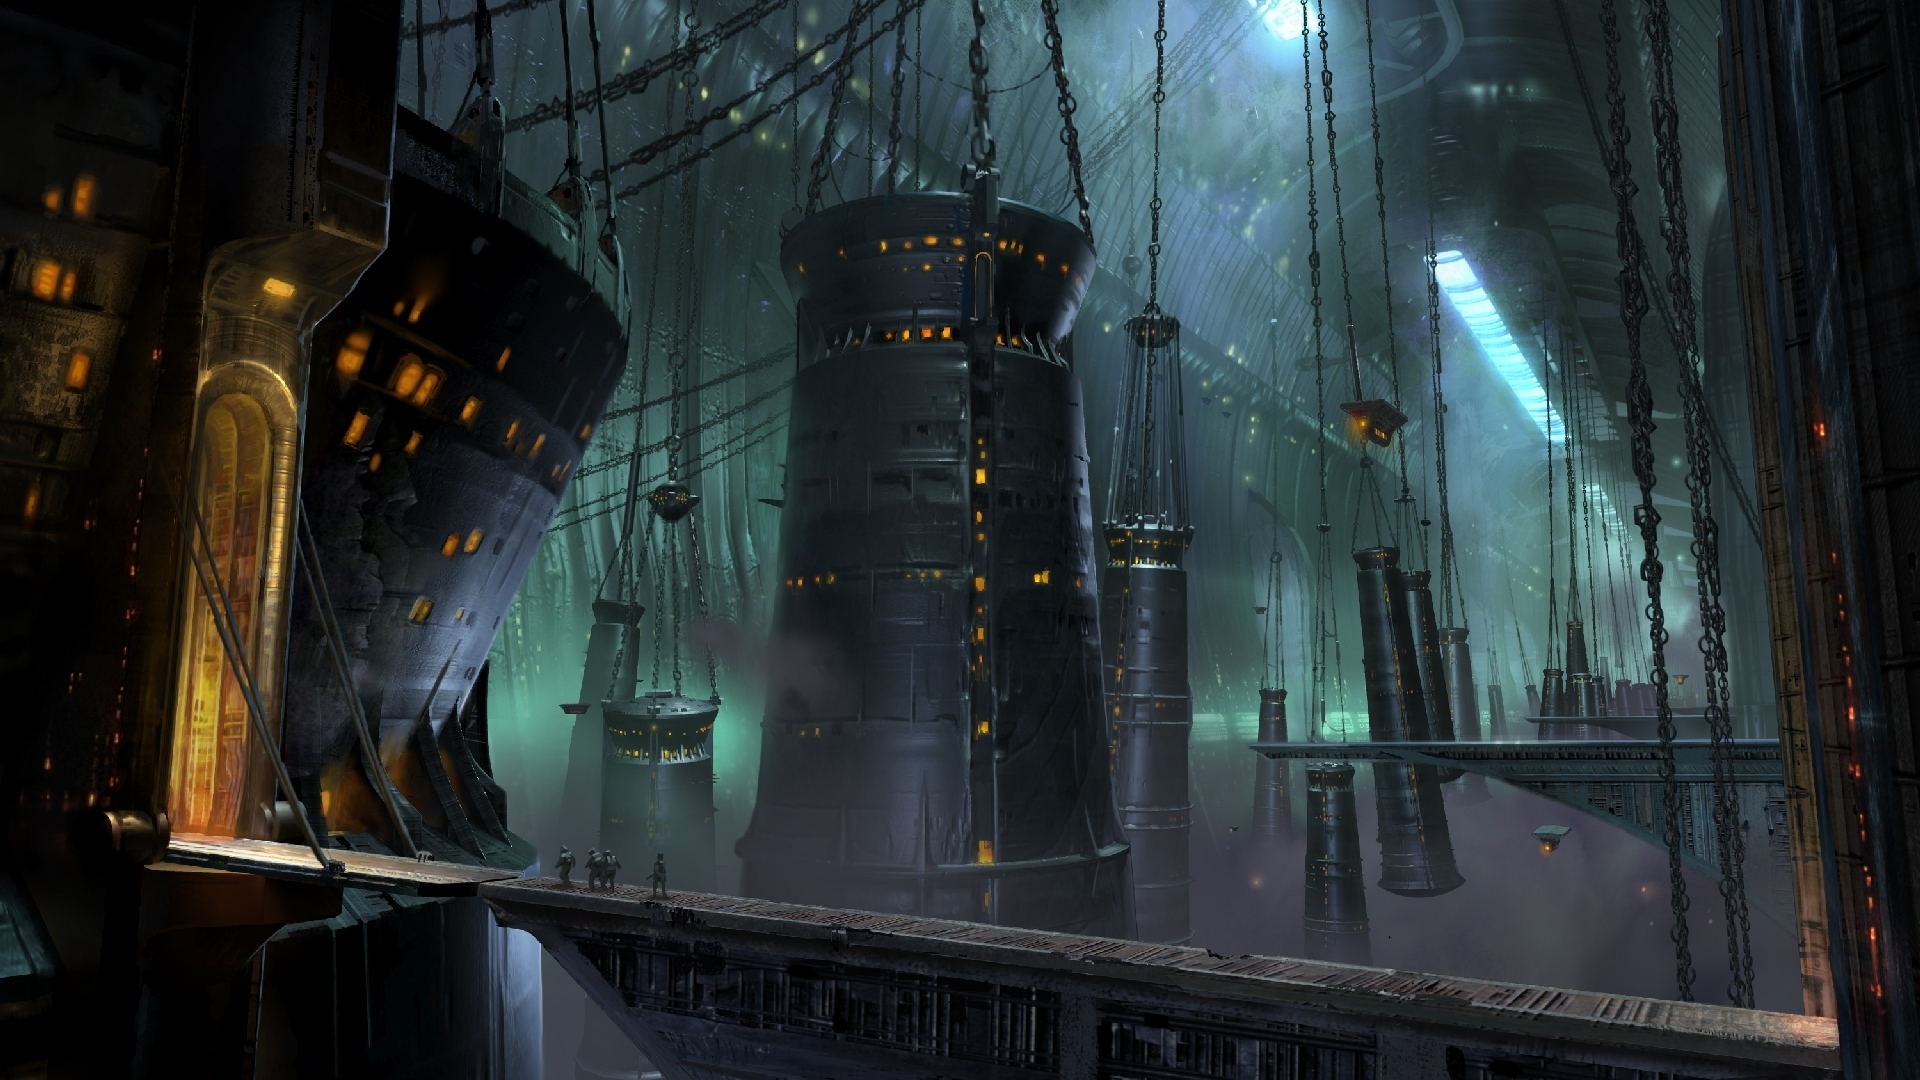 World Wallpaper Sci Fi Wallpaper: Fantastic World Fantasy Sci-fi Wallpaper